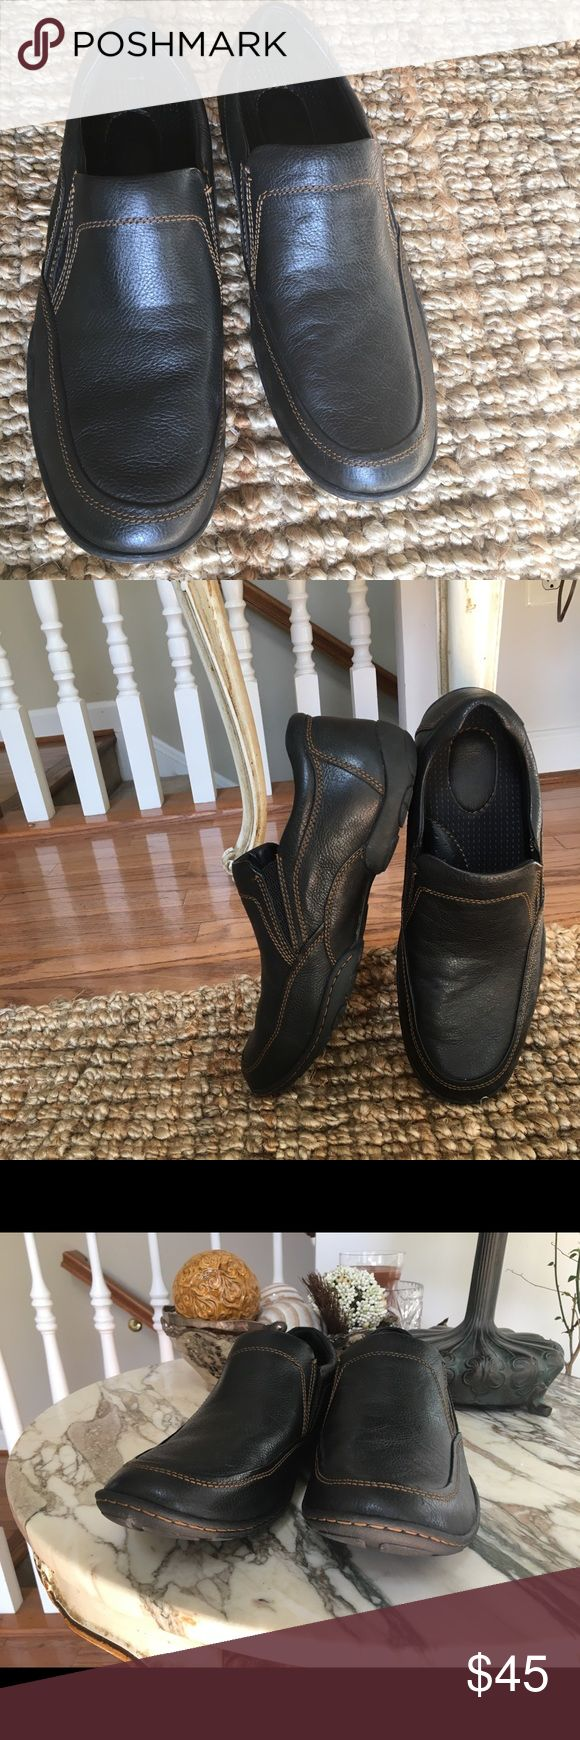 Born Luis Black Loafers size 13M Born Luis Loafers size 13 M style H13703 in great used condition. Born Shoes Flats & Loafers